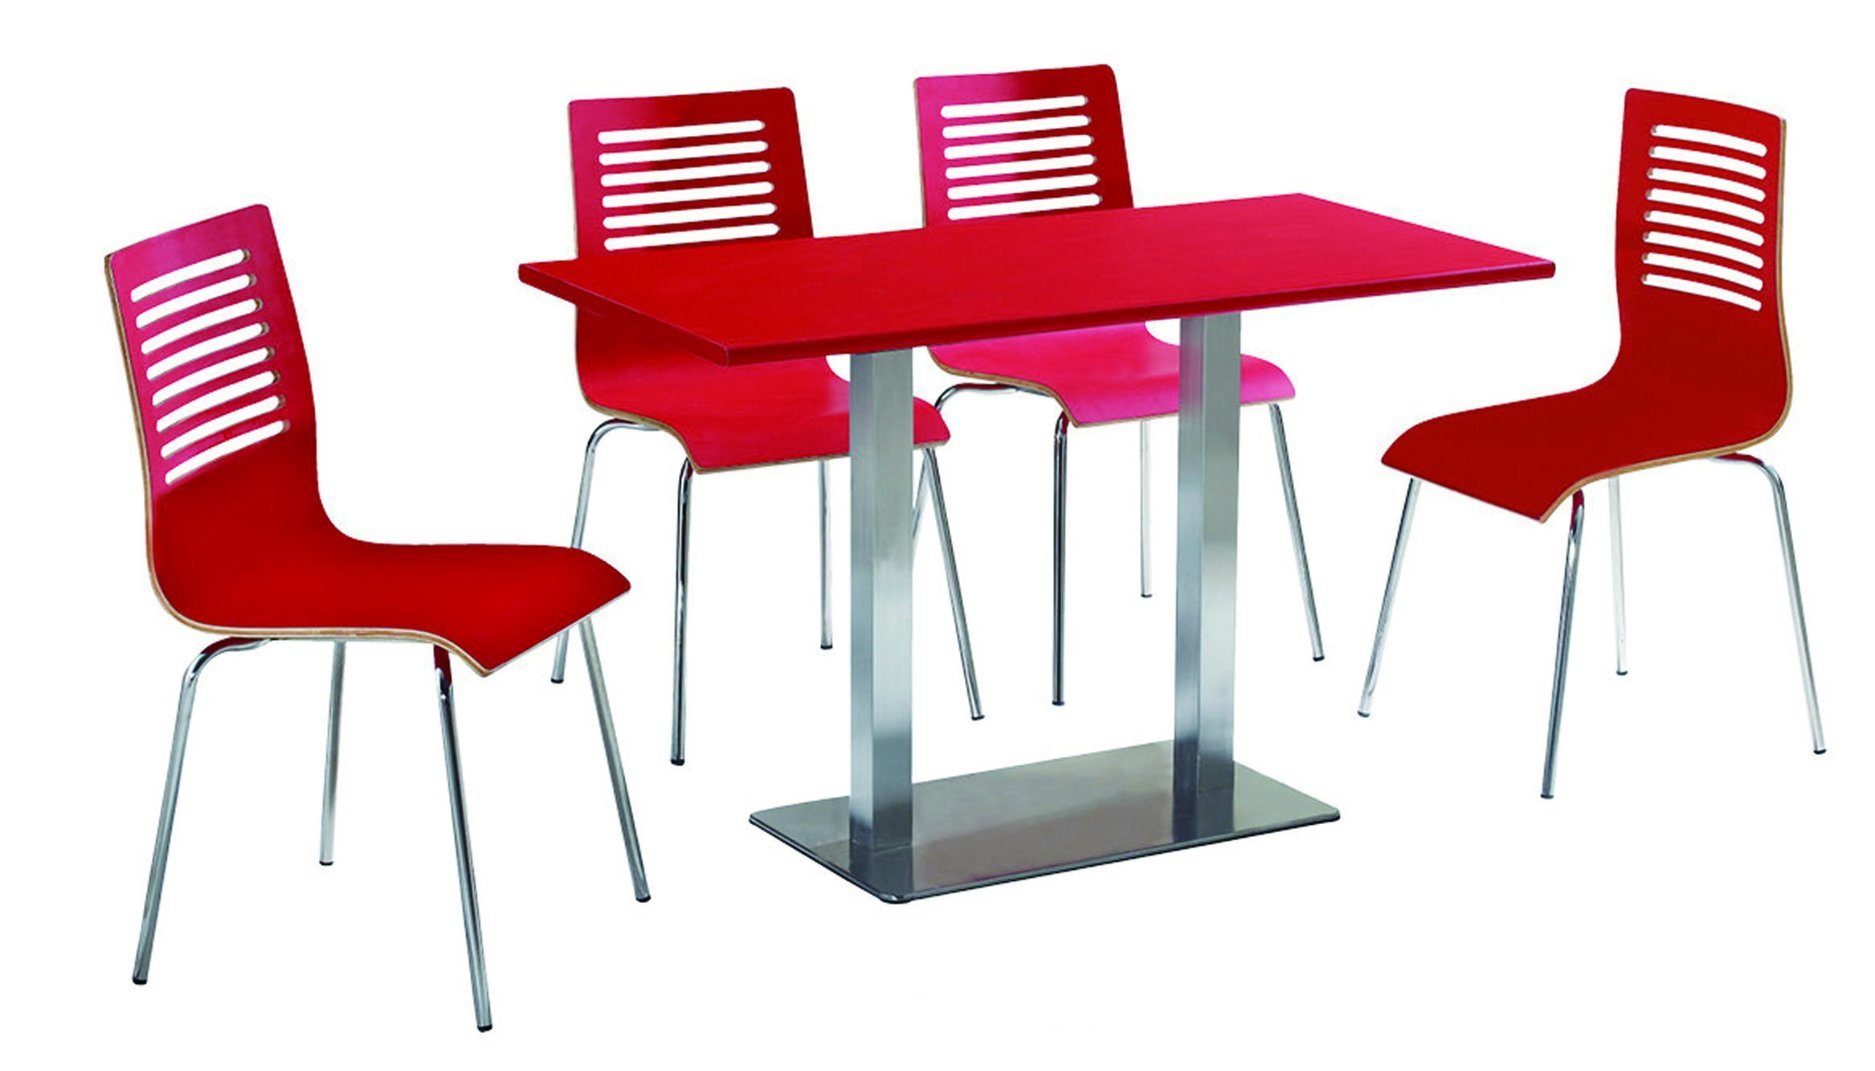 4 Seats Dining Table and Chair for Fast Food